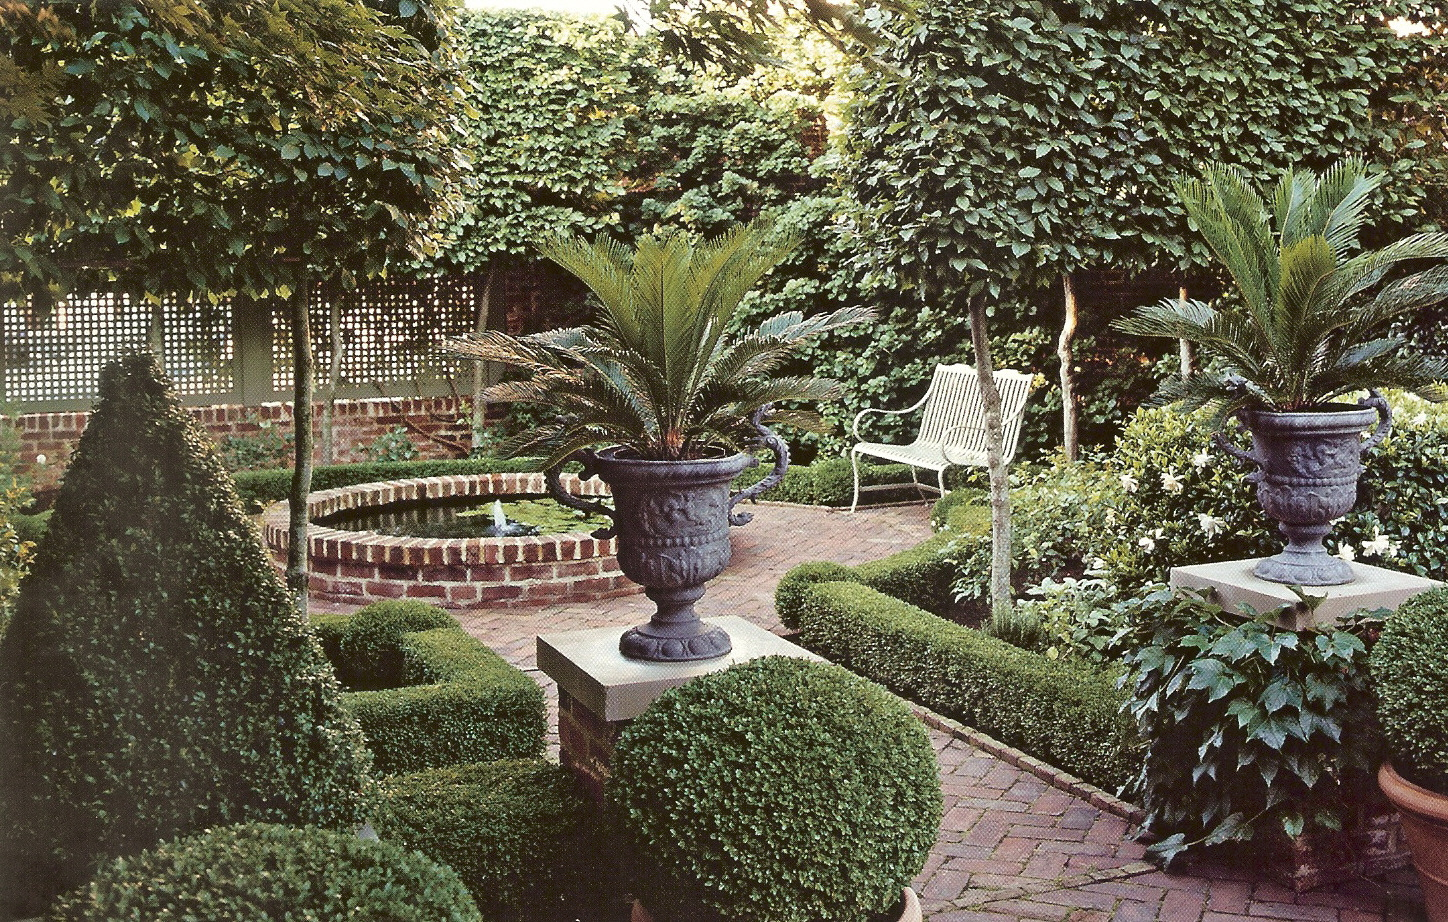 Italian courtyard garden design ideas joy studio design for Small front courtyard design ideas